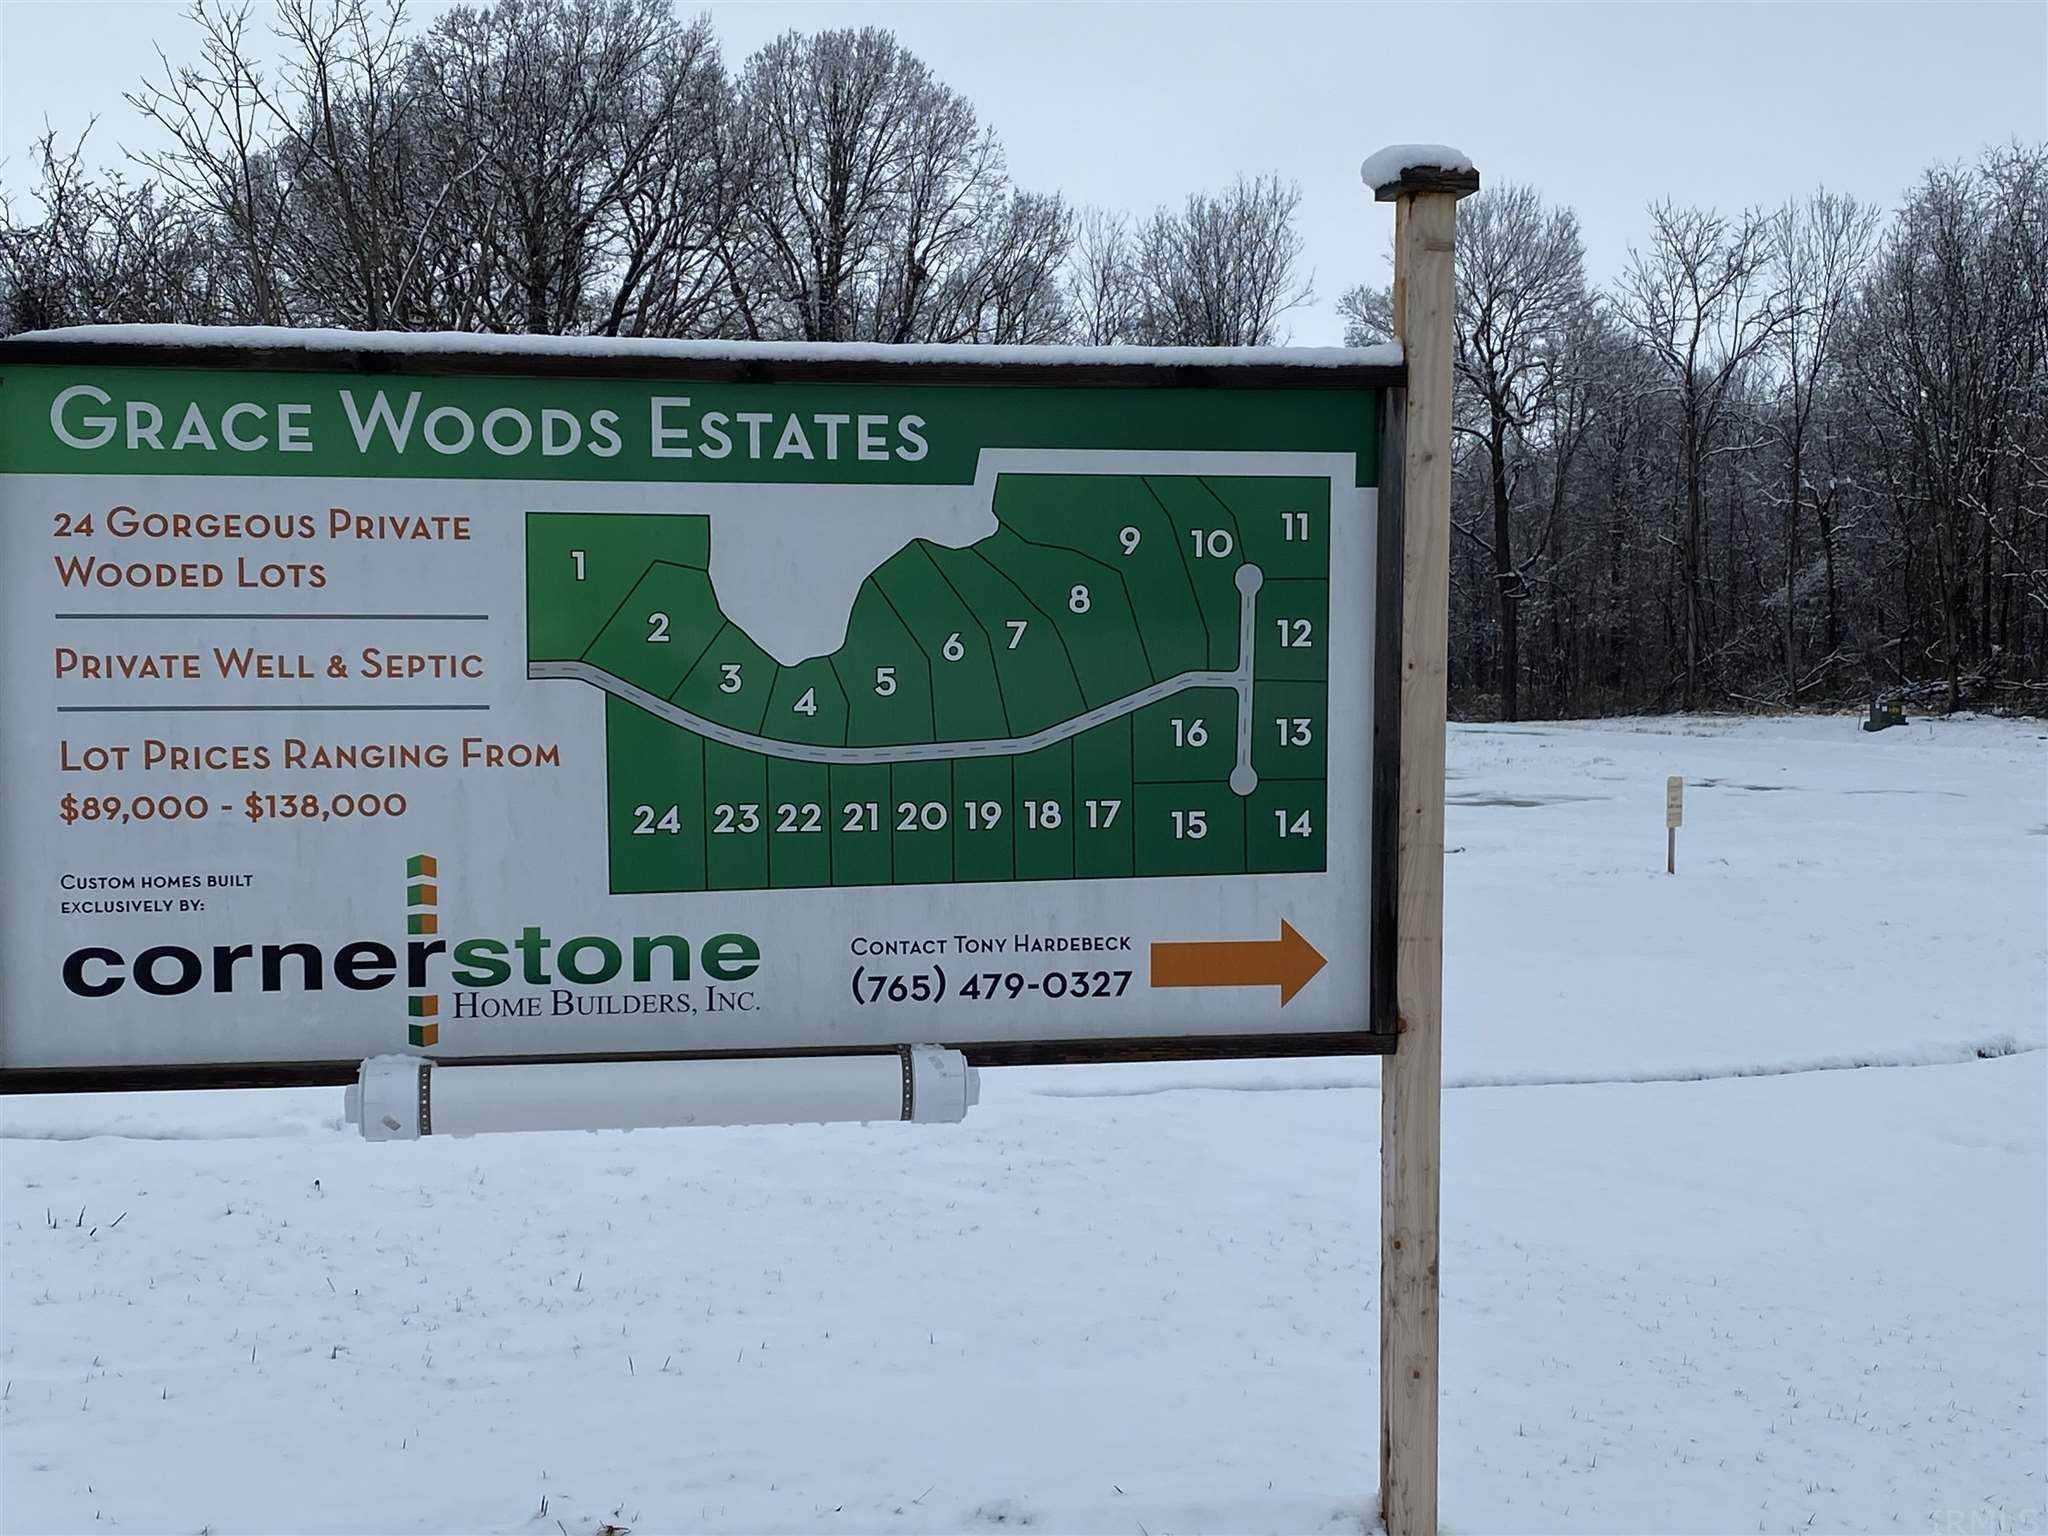 Residential Lots & Land for Sale at 9374 Herring Lane Battle Ground, Indiana 47920 United States